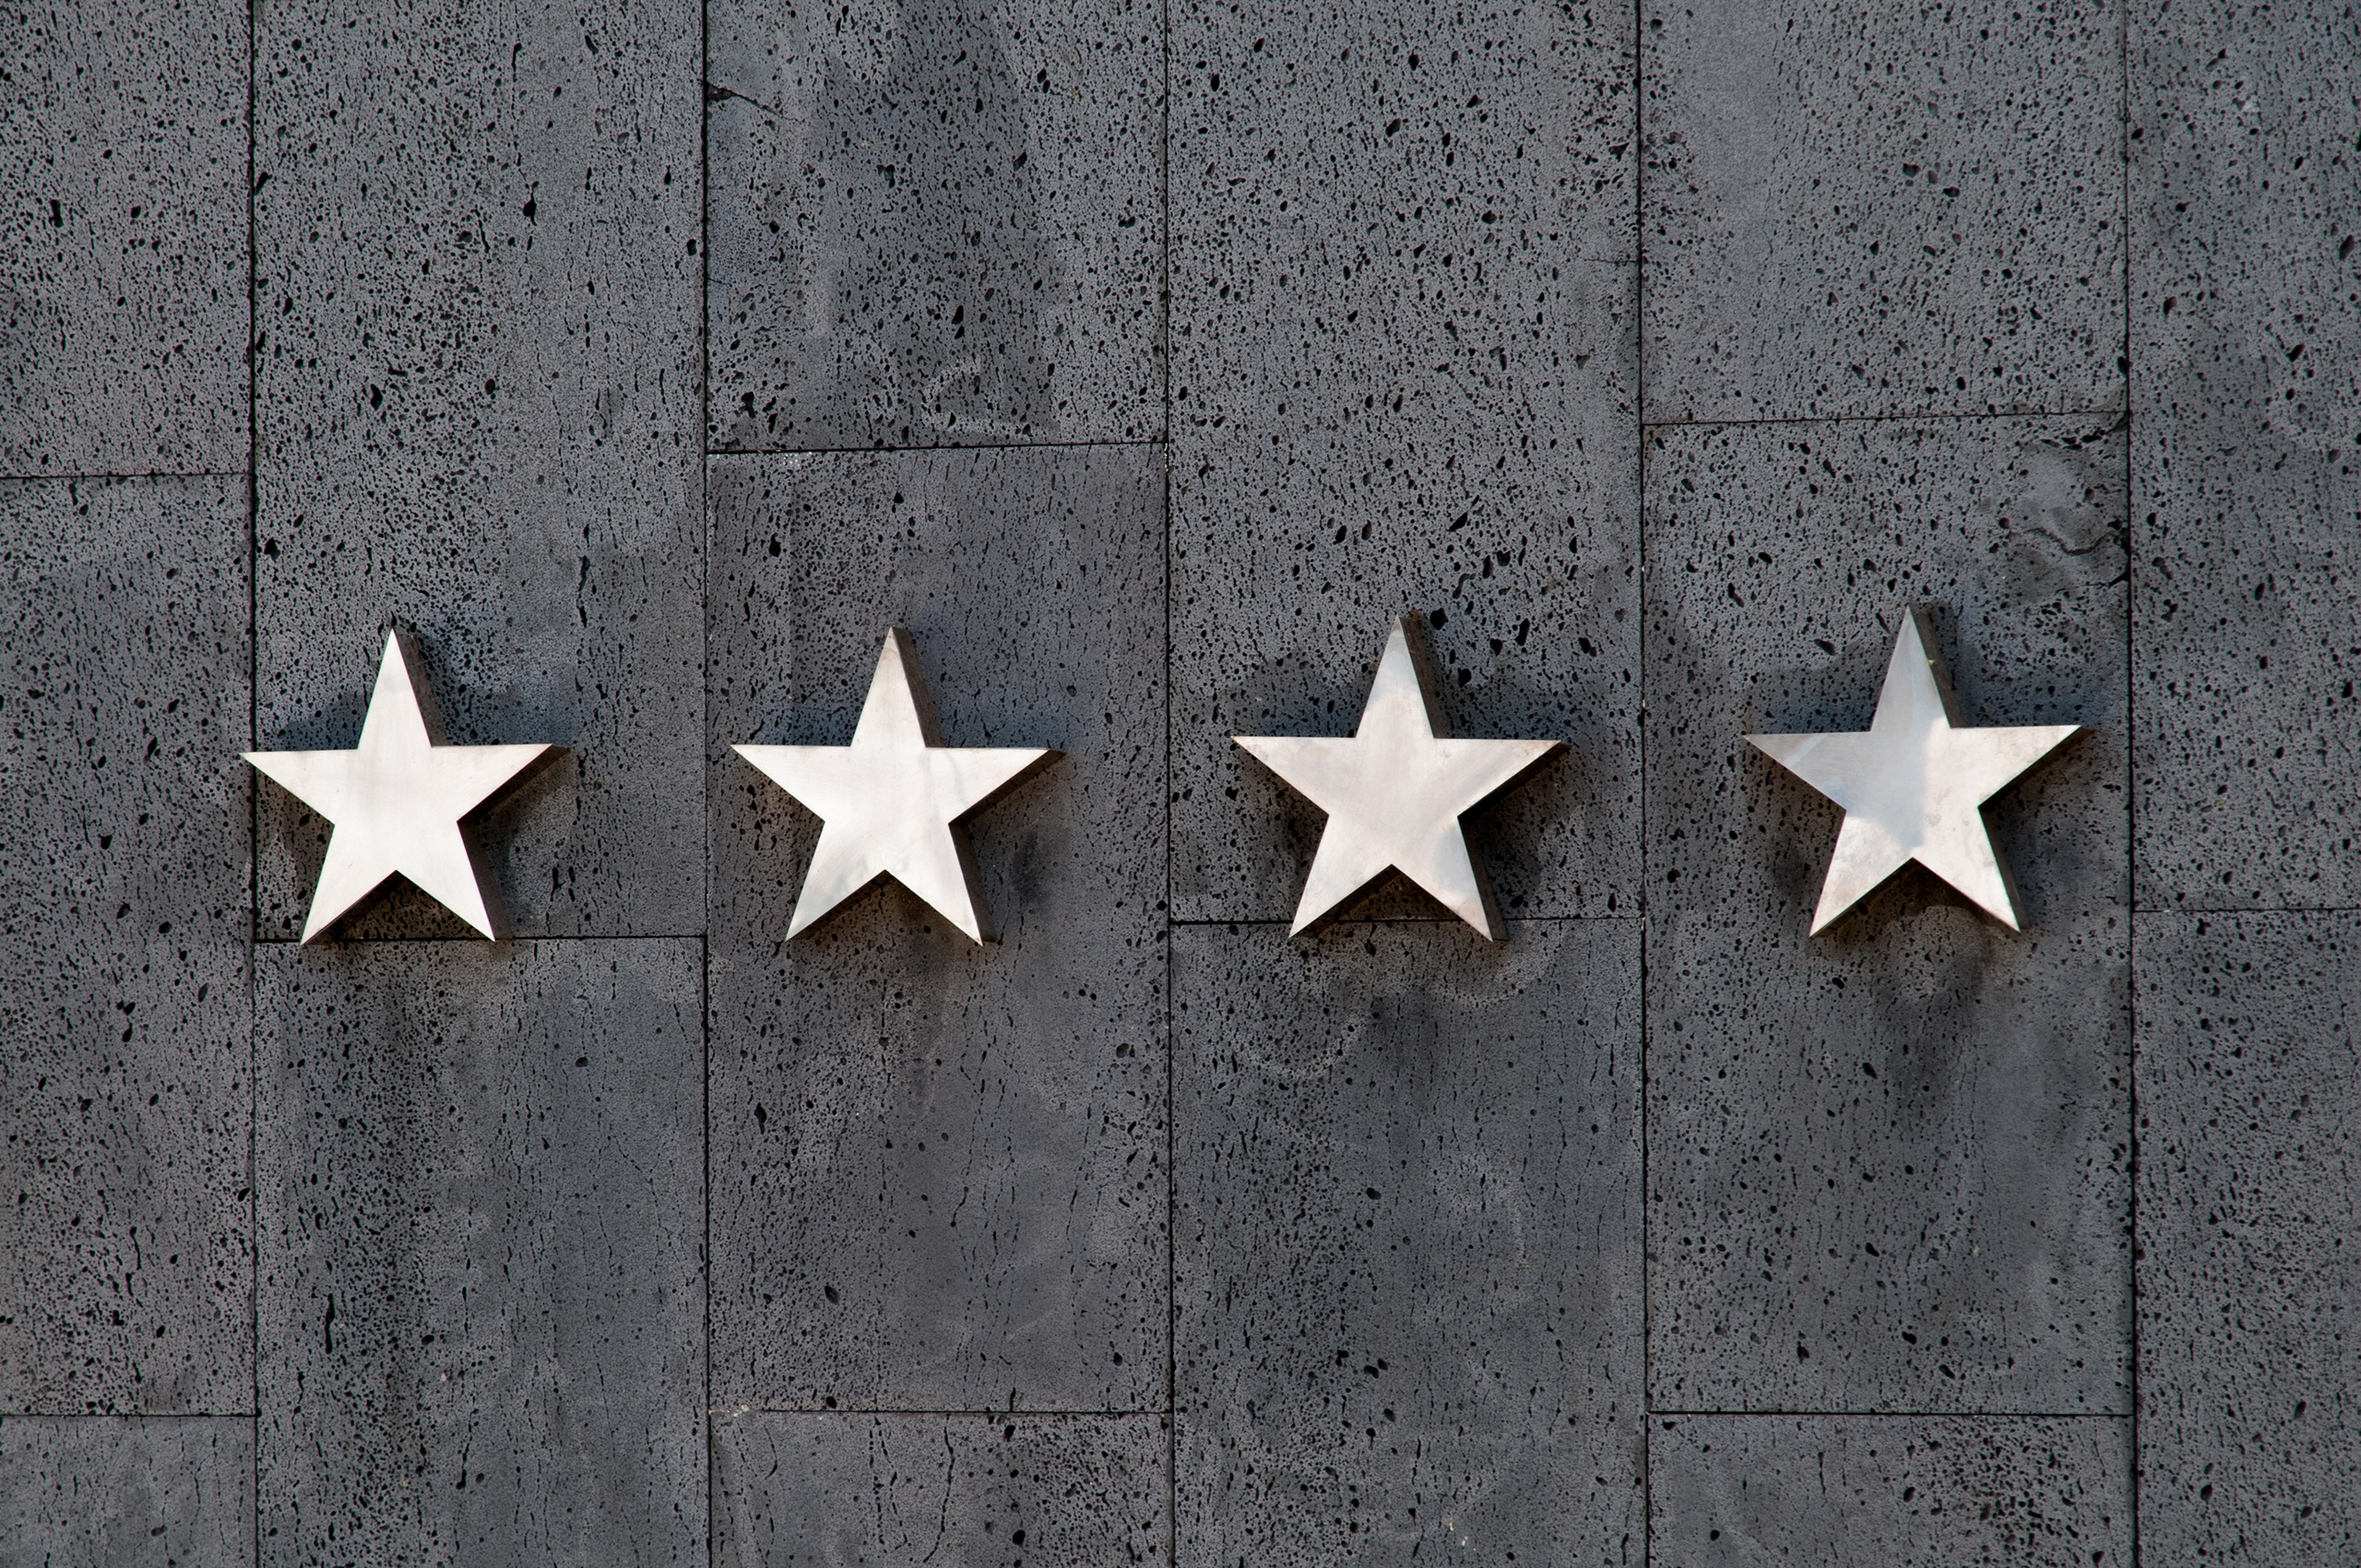 Wall with four stars